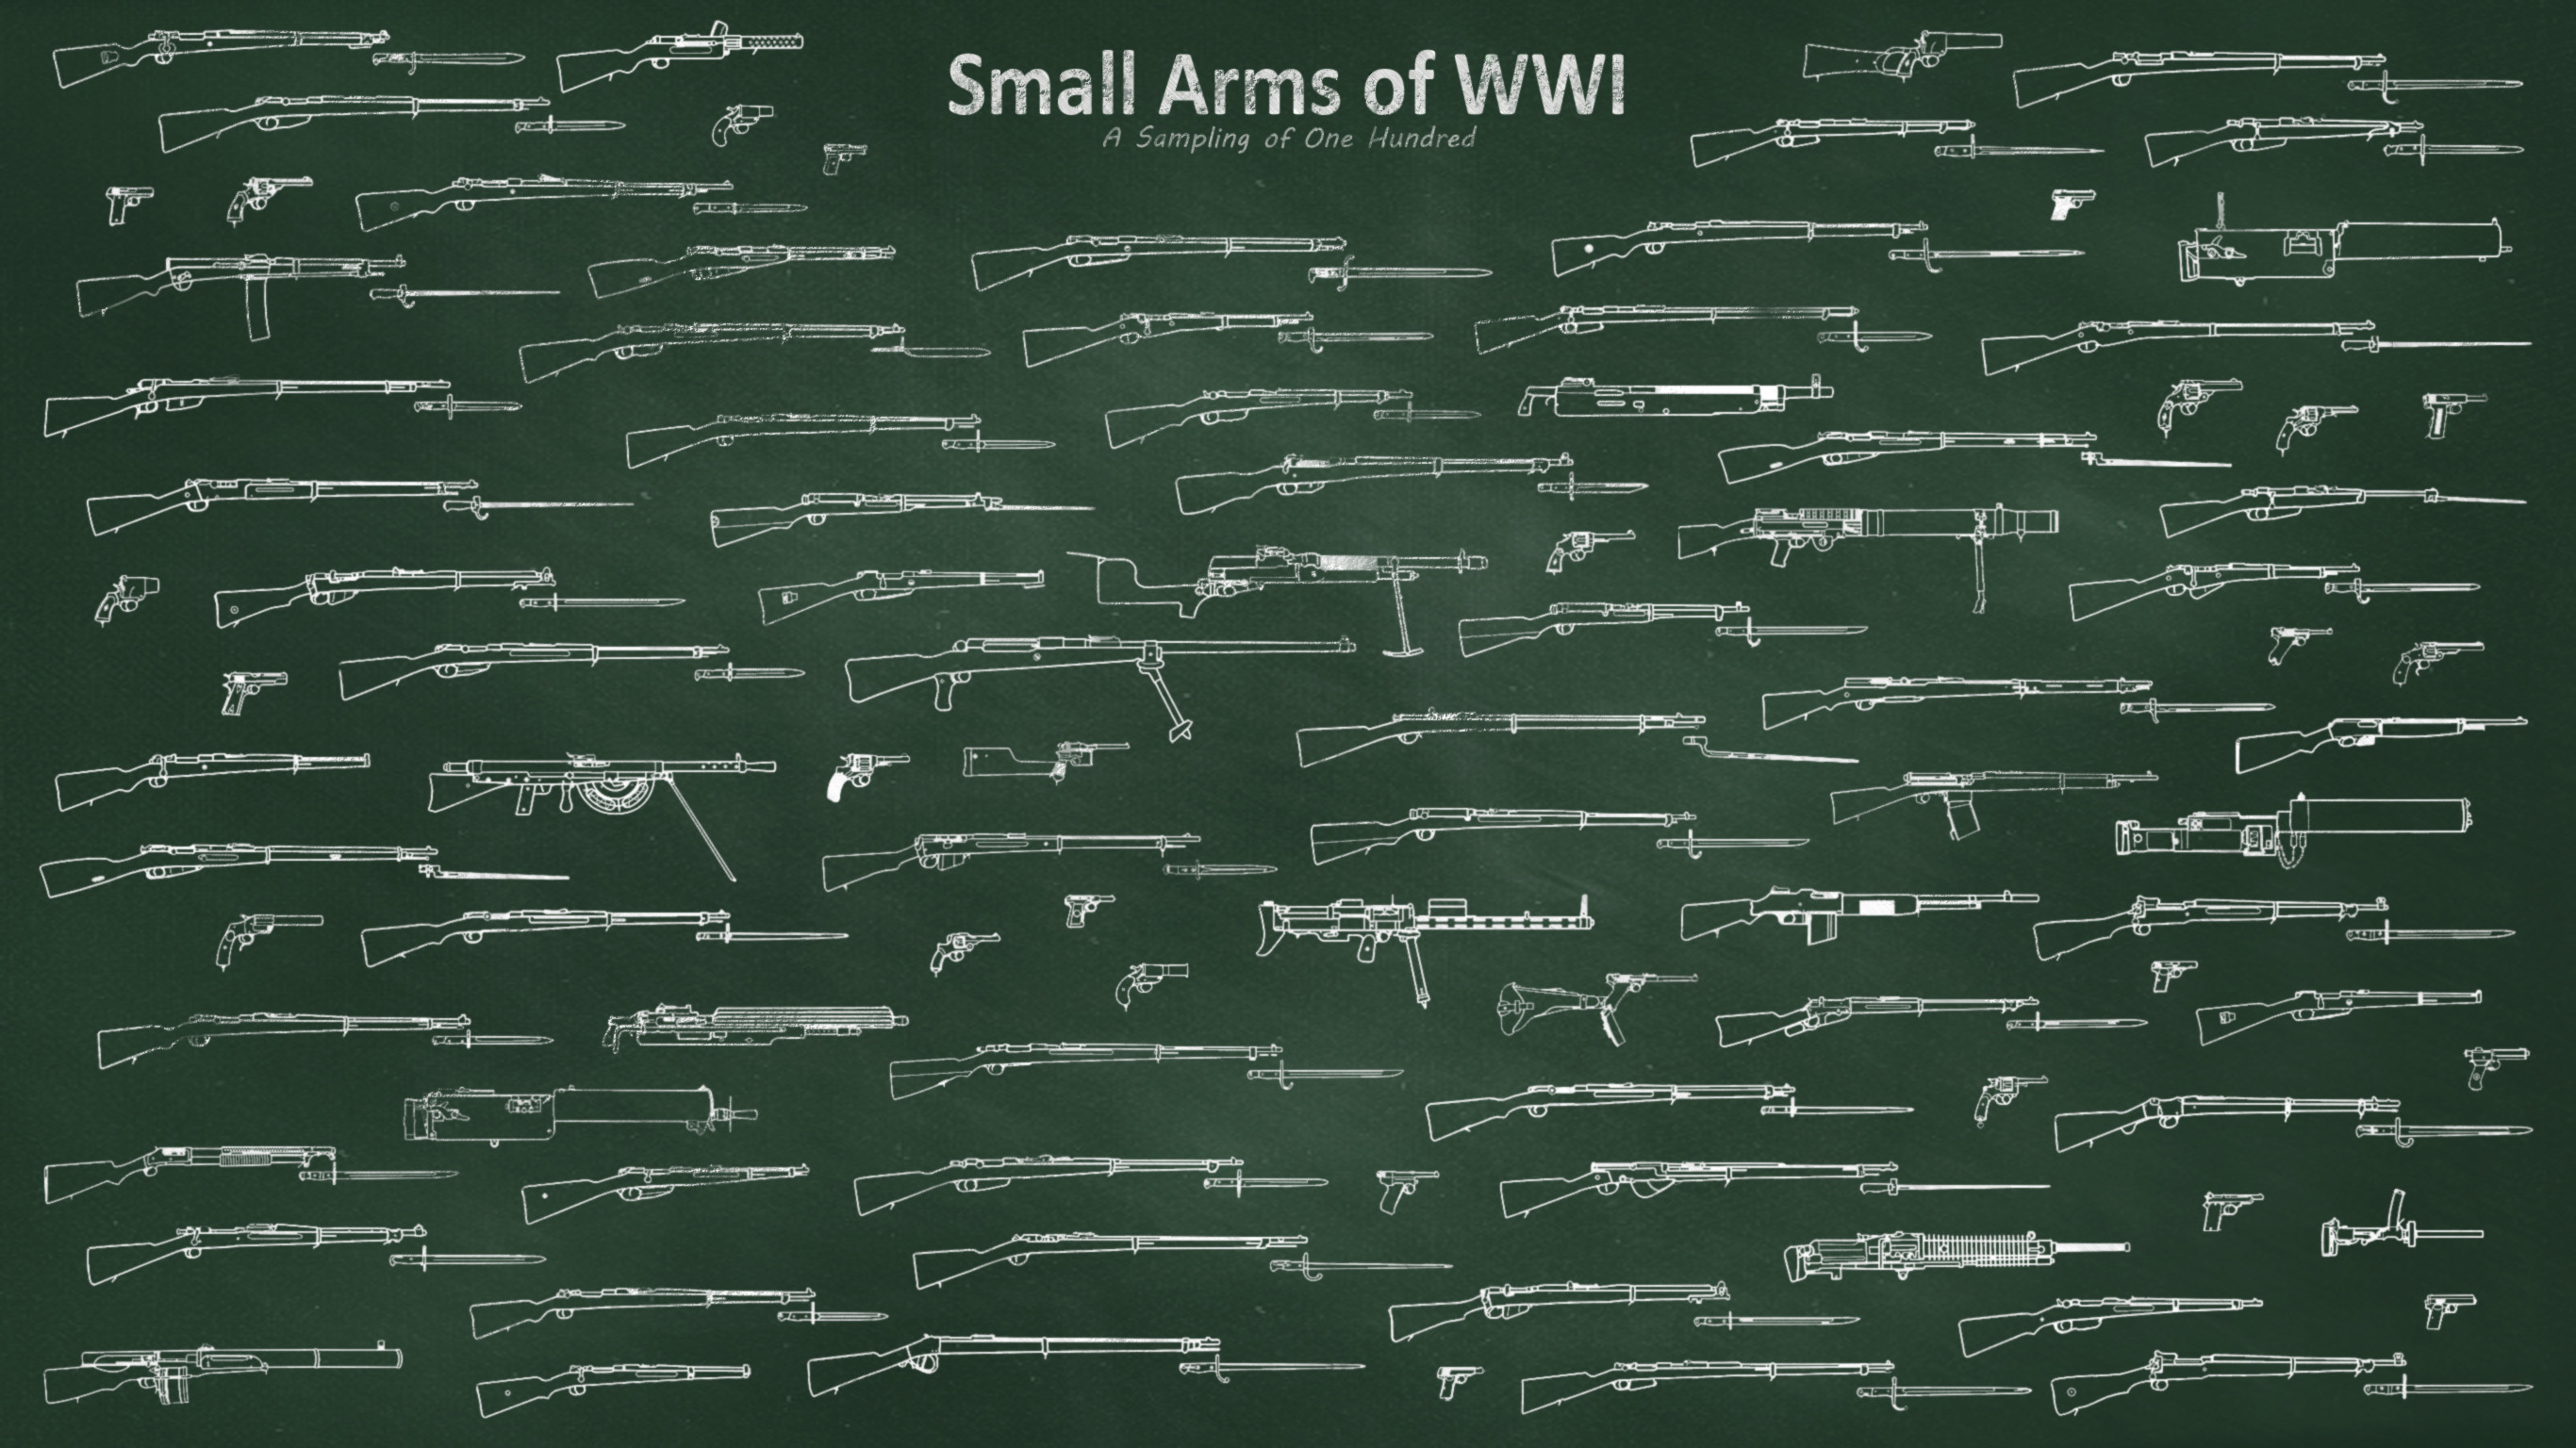 2732x1536 Savage Arms Wallpaper All the small arms of wwi